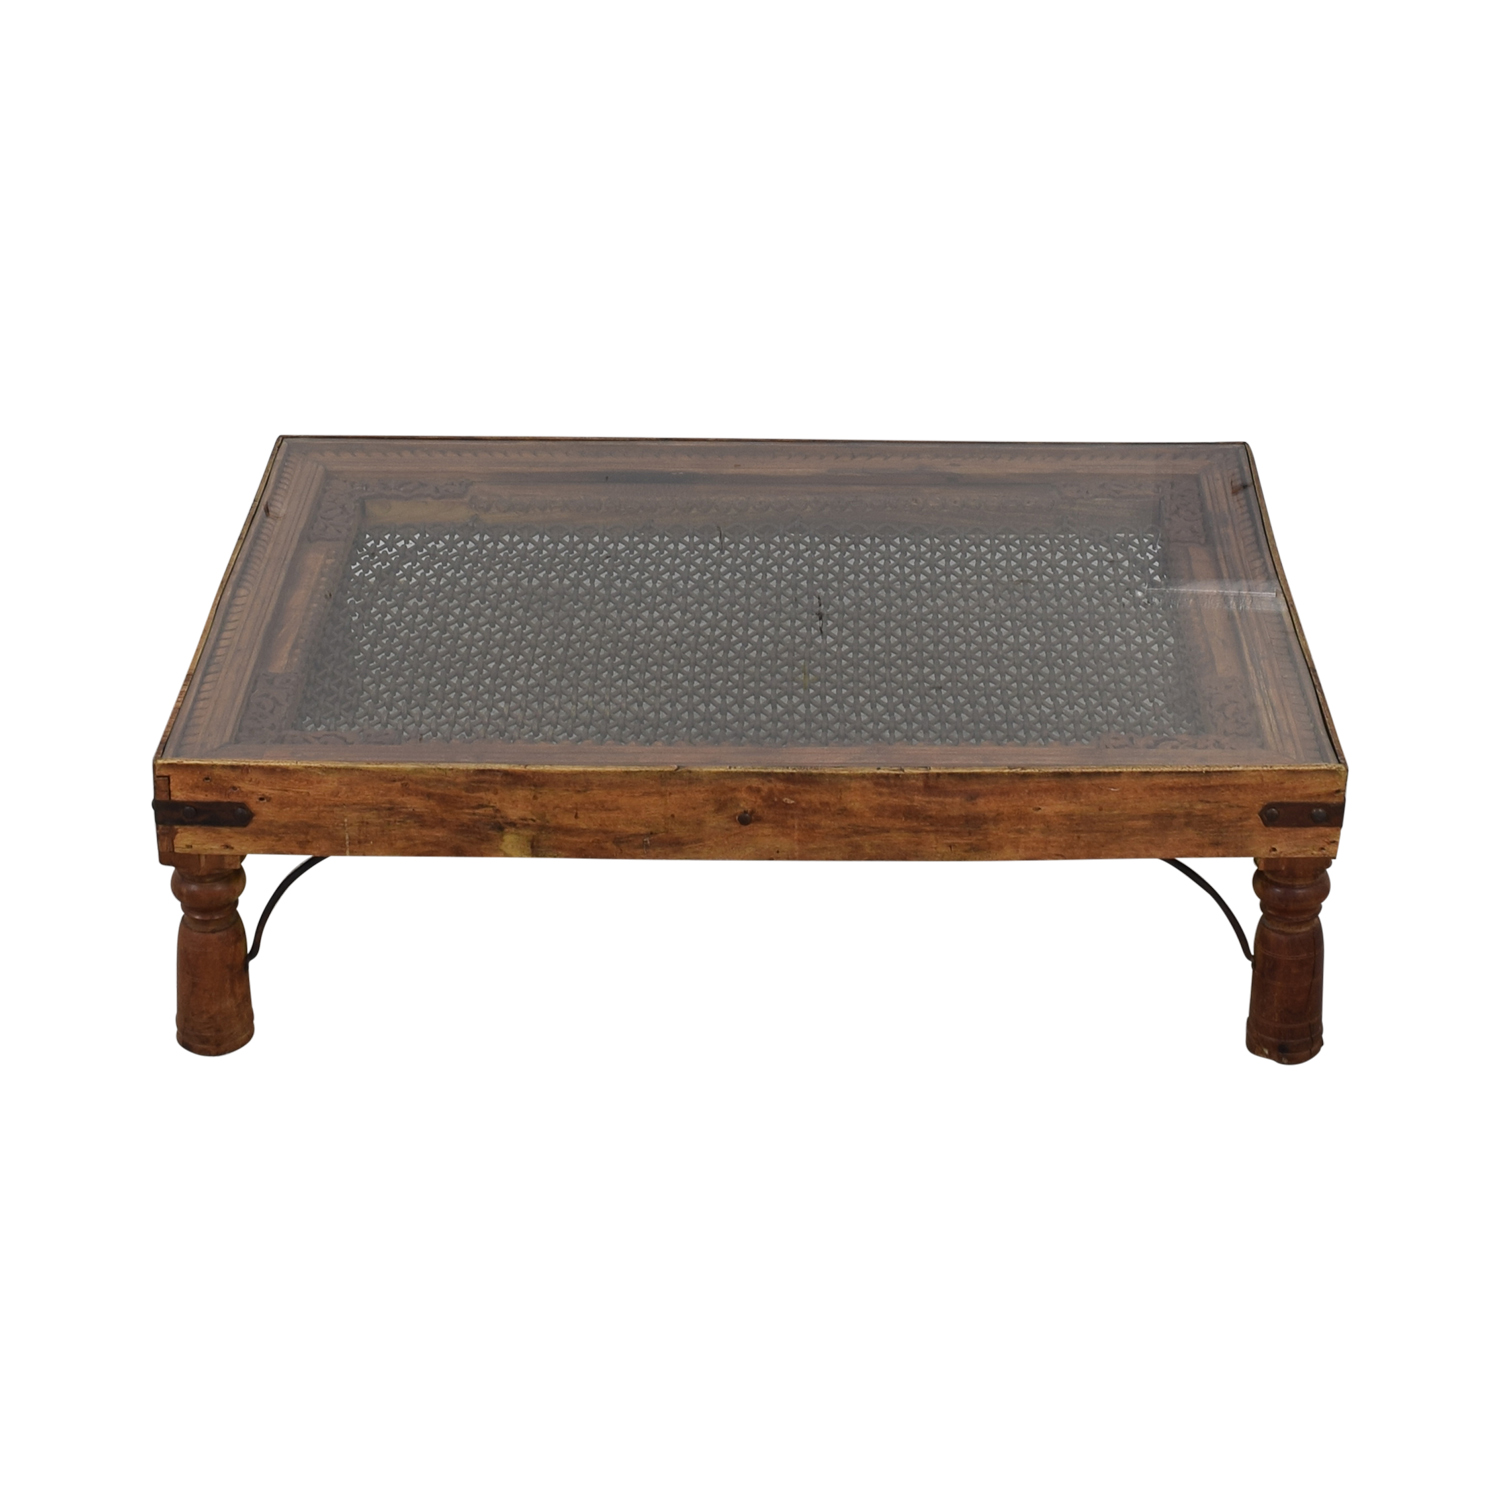 Vintage Coffee Table With Glass Top and Metal Lattice Inlay nyc